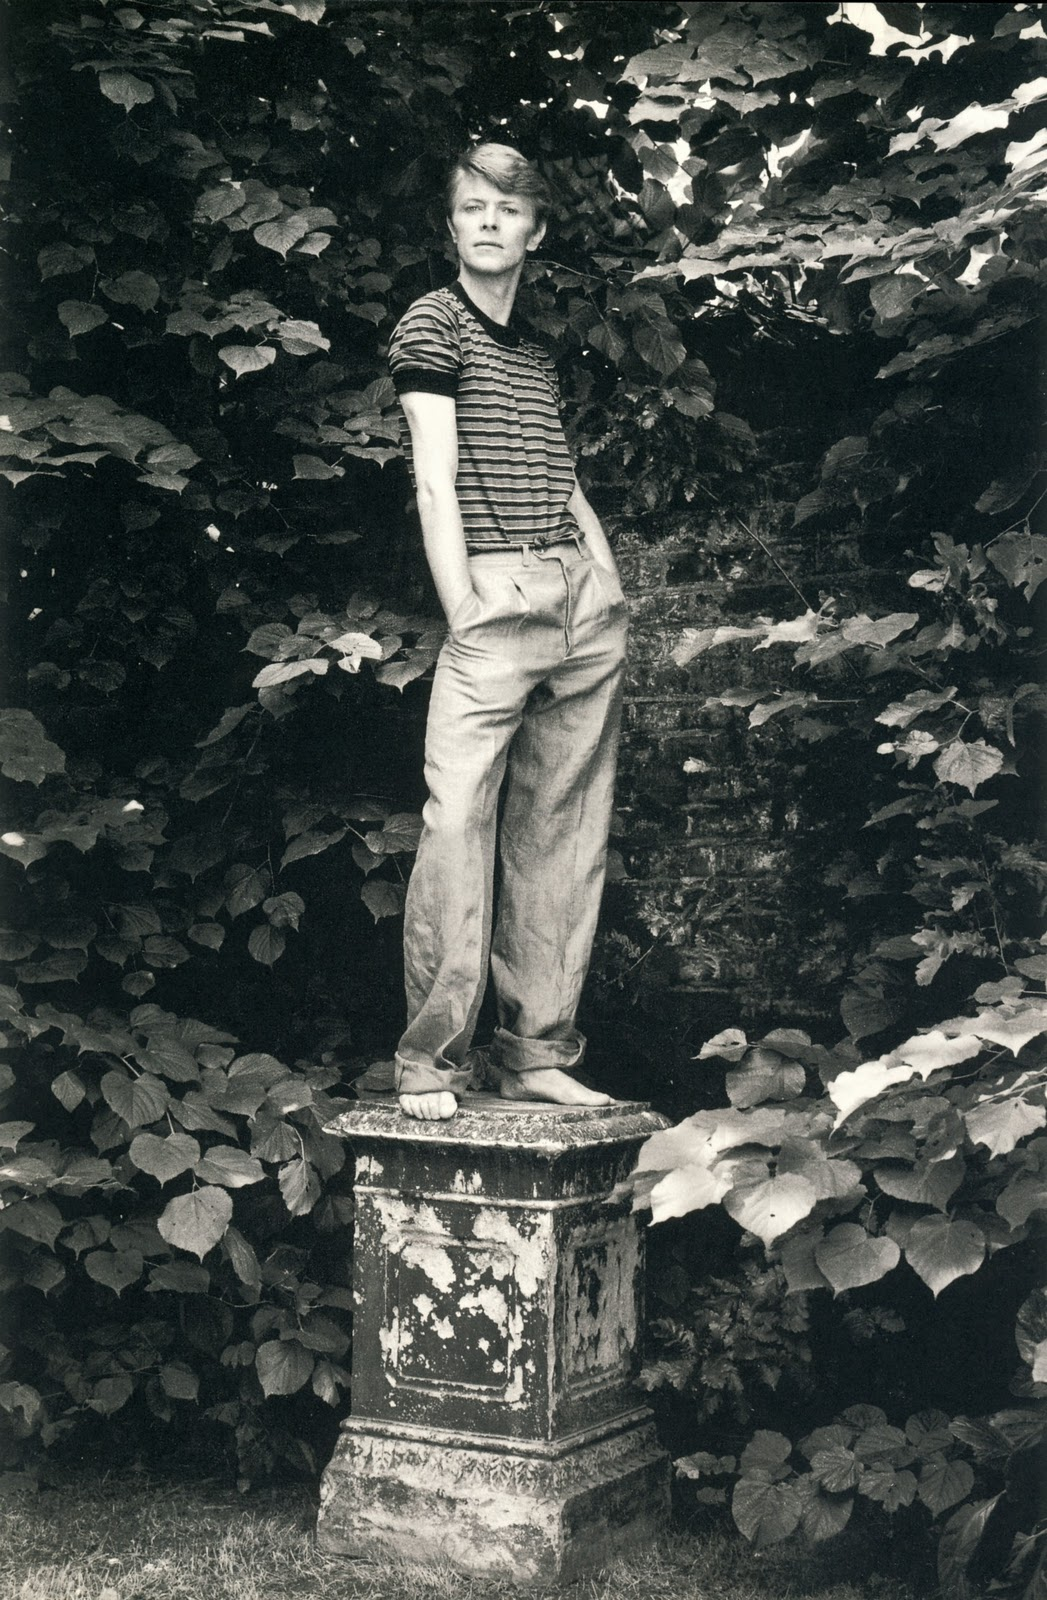 David Bowie retratado por Lord Snowdon, 1978